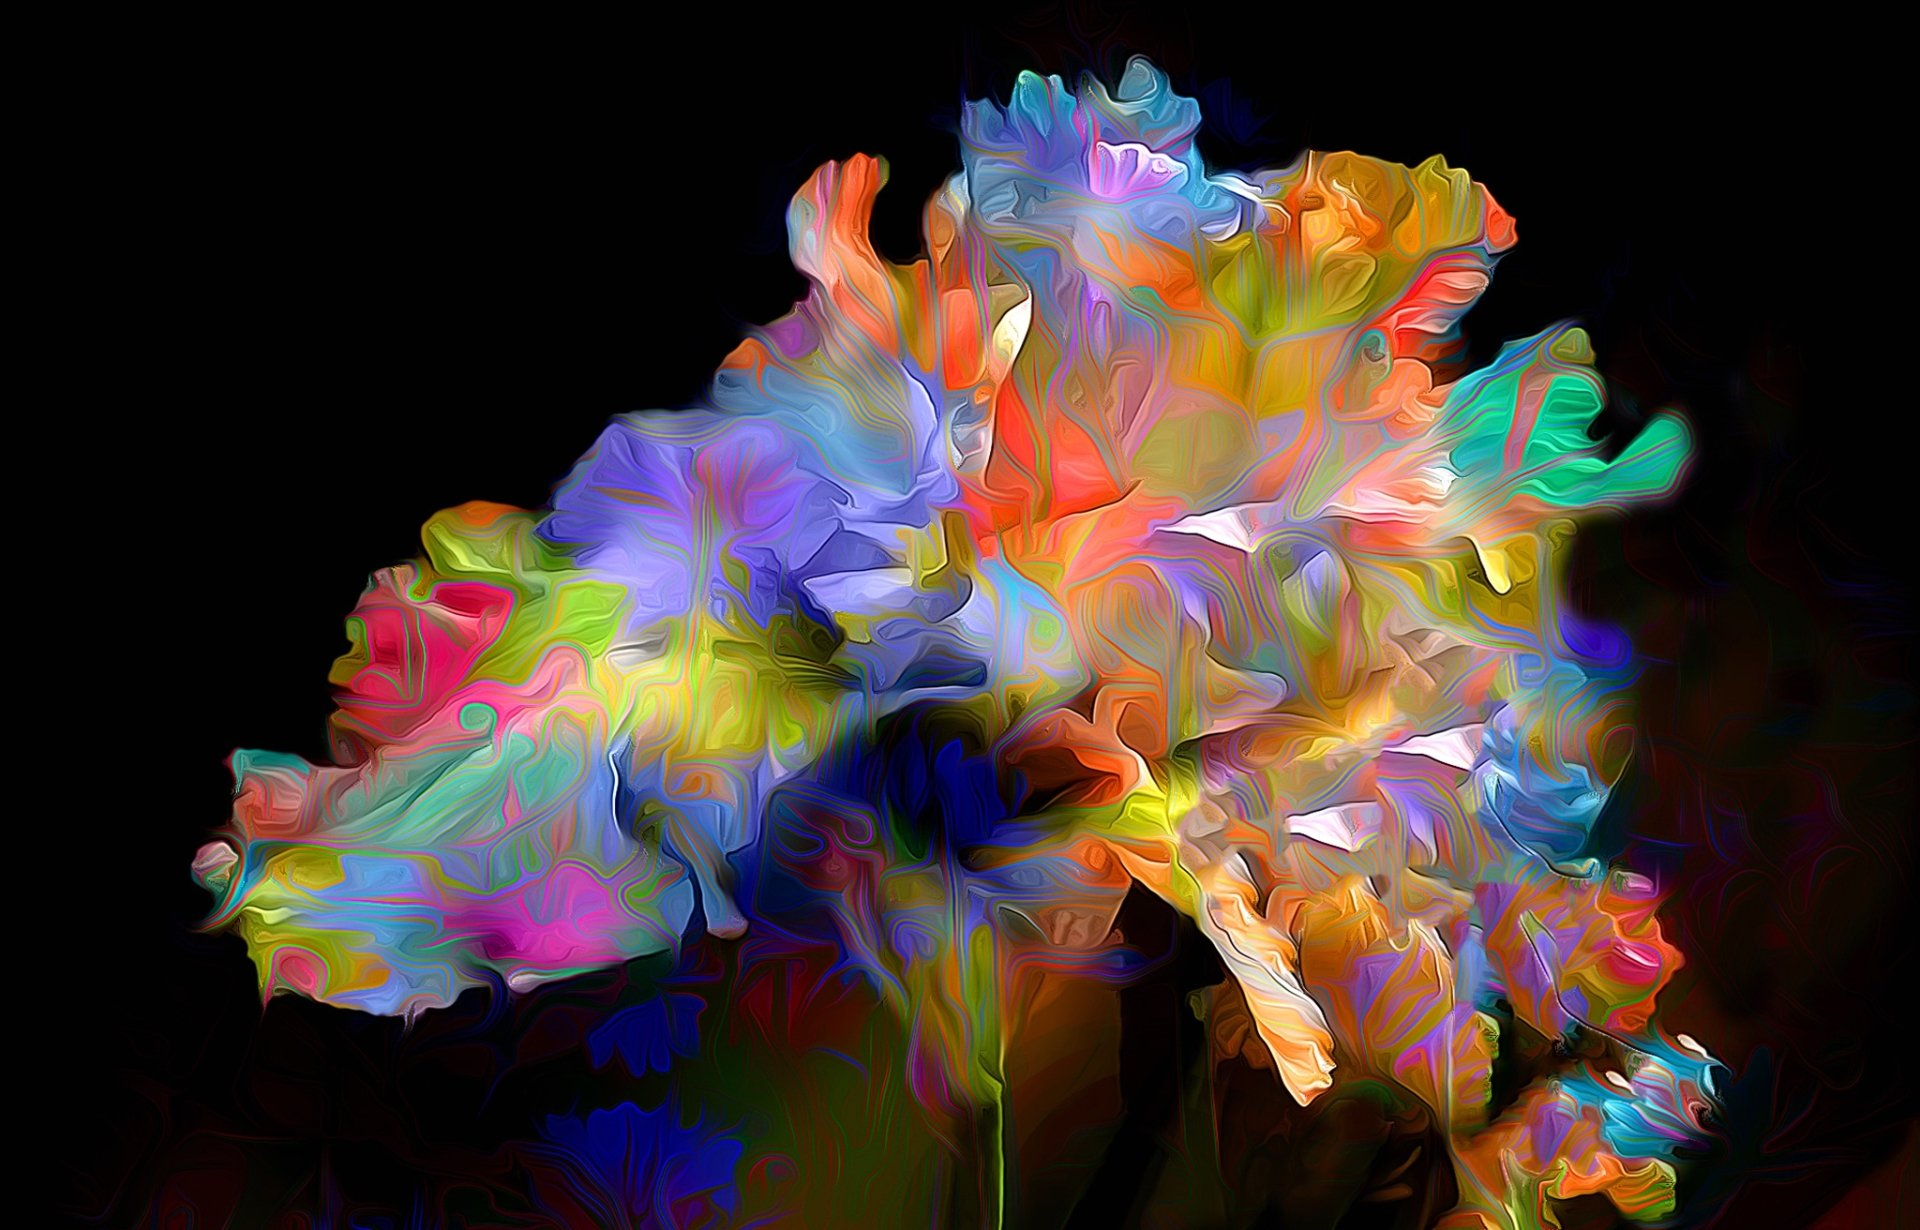 Abstract Flower Hd Wallpaper Background Image